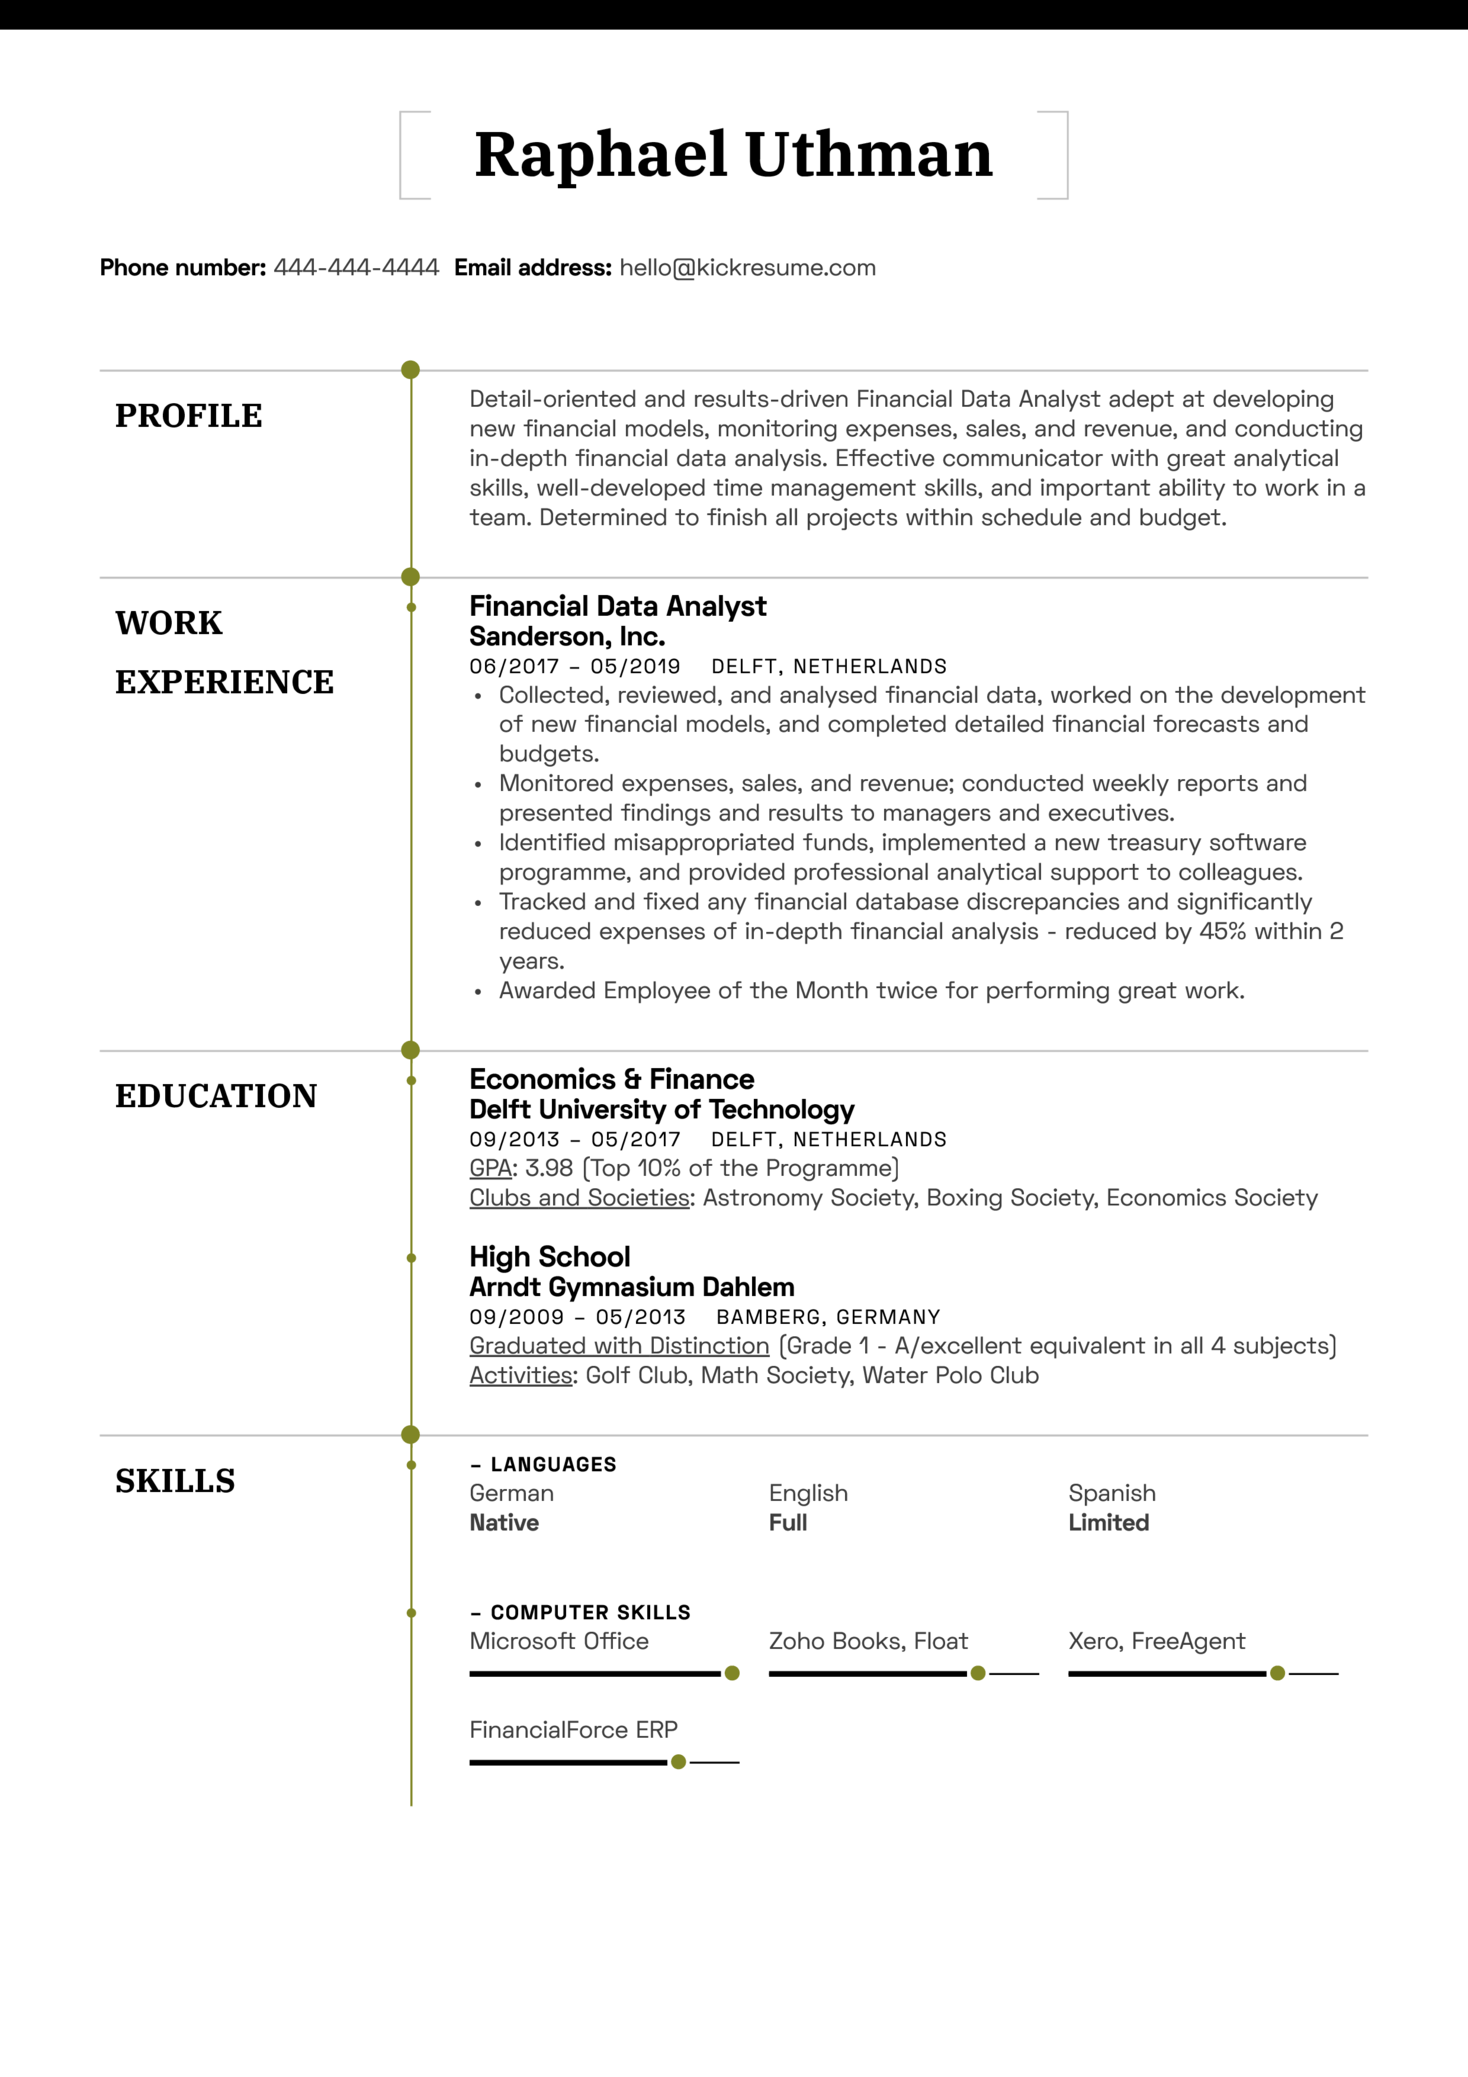 Resume Examples By Real People Financial Data Analyst